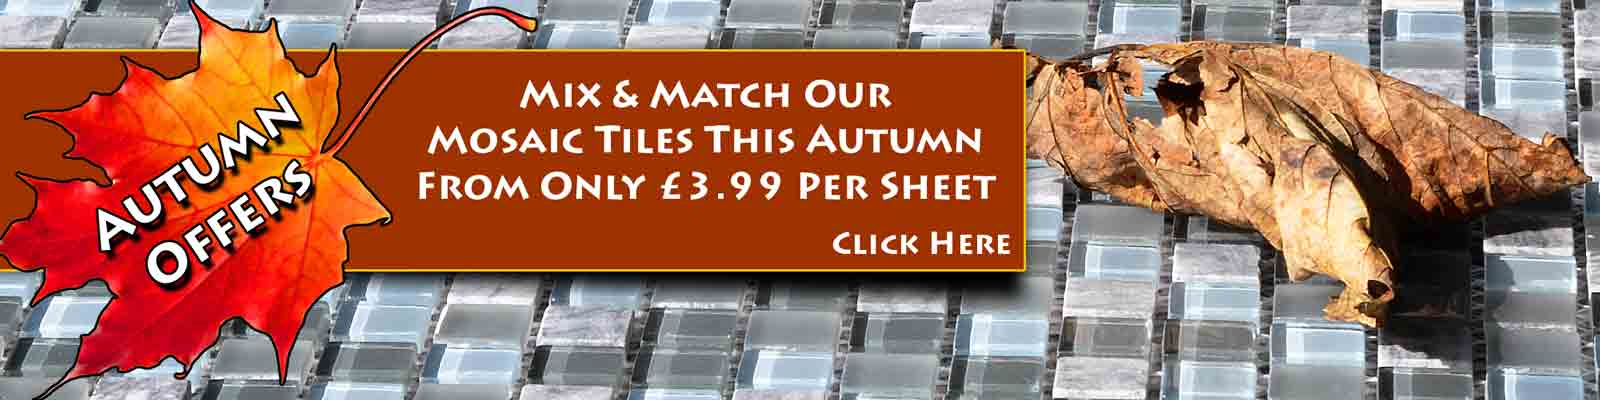 Autumn Offers for September Sale